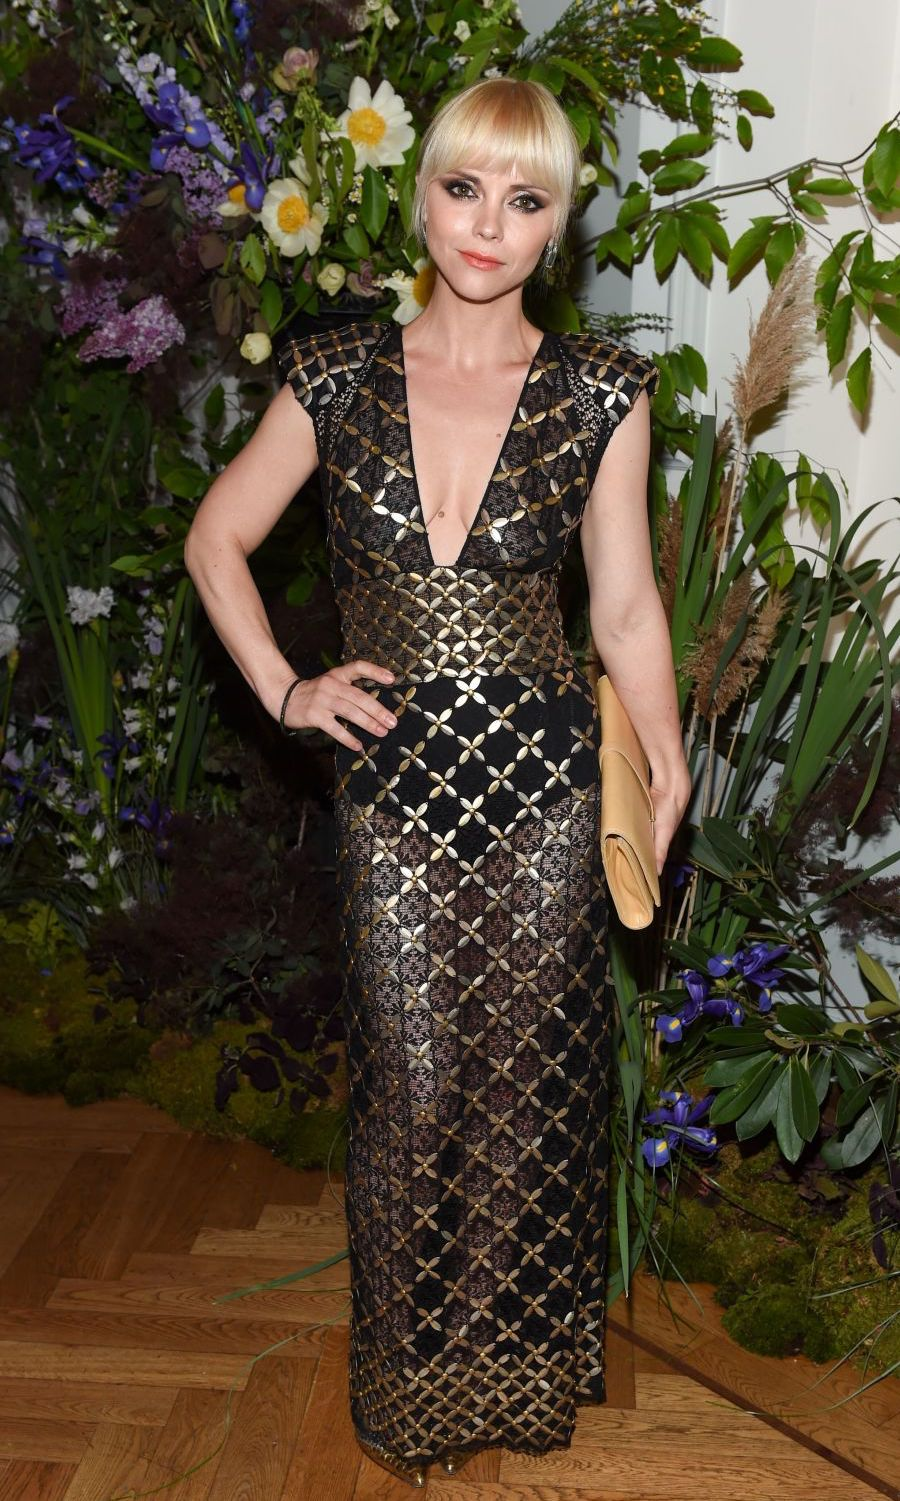 christina-ricci-wearing sophie-theallet-at-museum-of-arts-and-design-s-gala-in-new-york-05-18-2017_3.jpg